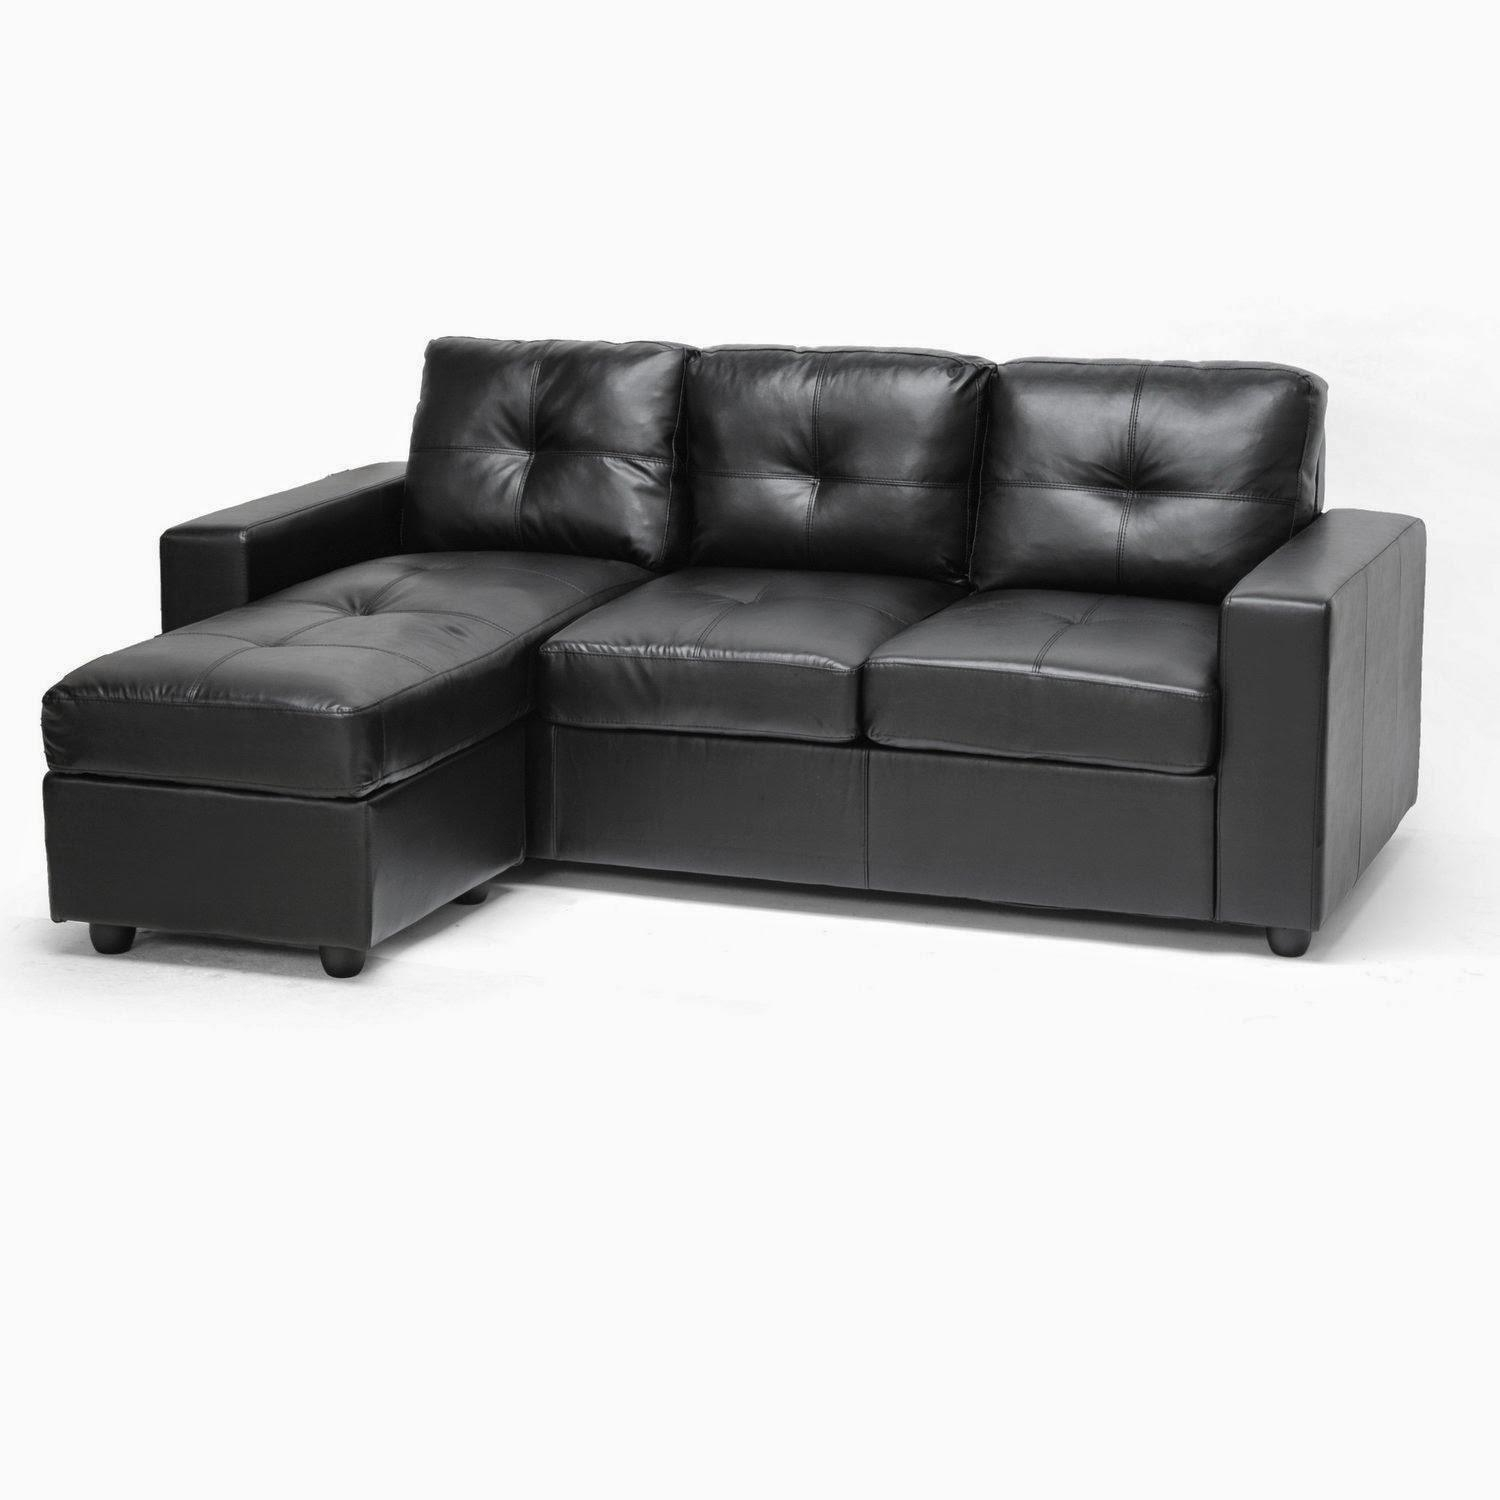 Black Modern Couch | Woodworking Plans With Regard To Black Modern Couches (Image 6 of 20)